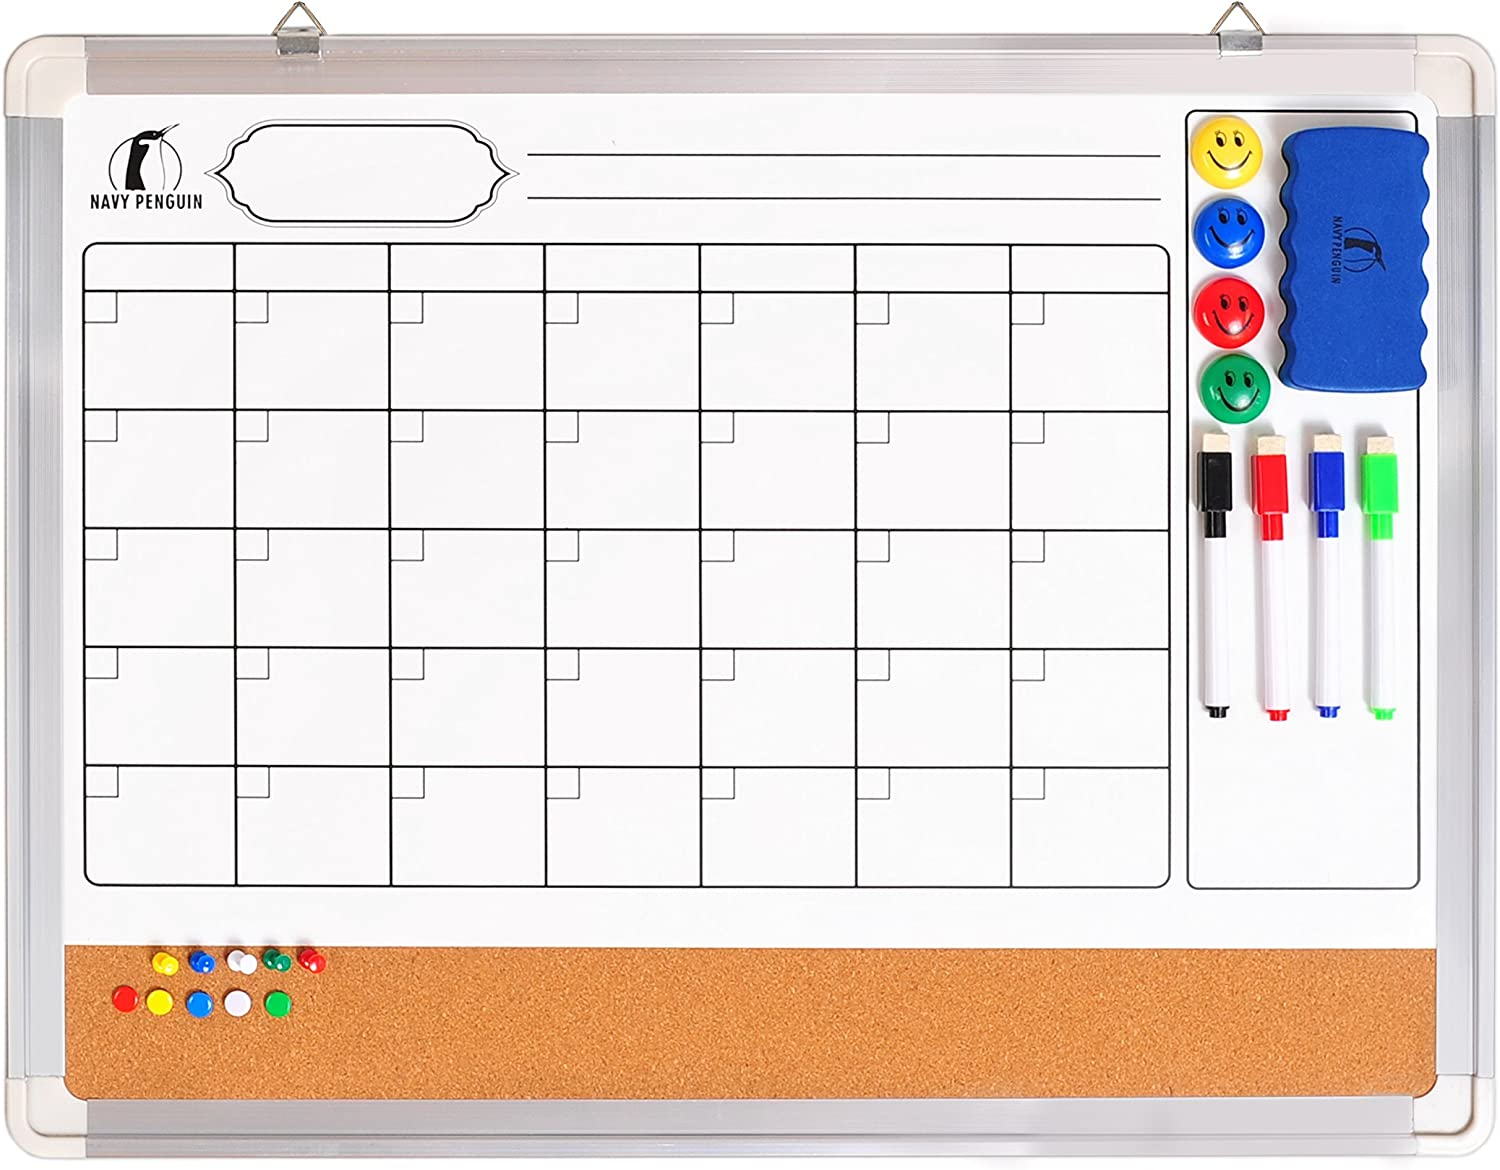 Navy Penguin Whiteboard Monthly Planner 24 X 18 In Magnetic Calendar Dry Erase Cork With Eraser 4 Dry Wipe Pens 4 Magnets And 10 Pins White Organiser Board For Wall Kitchen